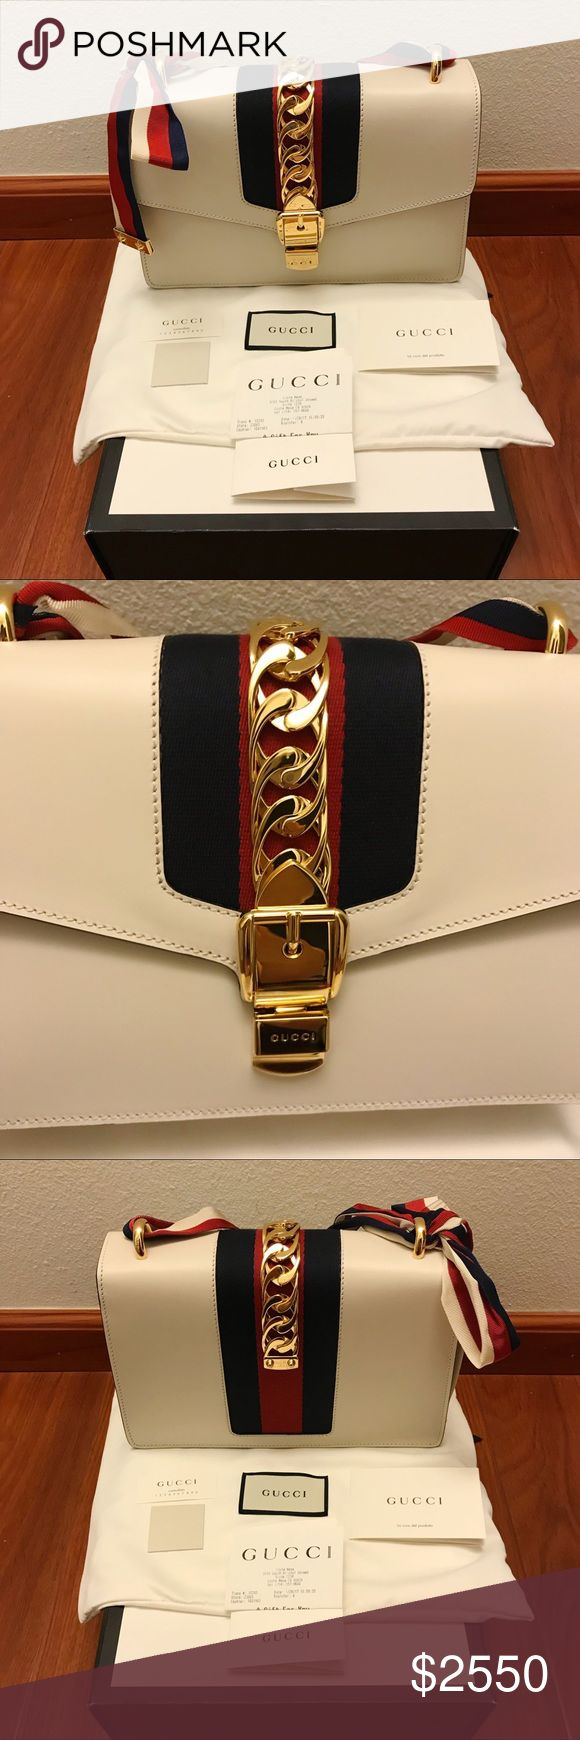 Gucci Sylvie Off White Leather Shoulder Bag Purse Guaranteed authentic, with gift receipt from South Coast Plaza. Used only once, as seen from pictures it is in like new condition! Lovely purse but its just been sitting in my closet therefore I'm selling it. Comes with everything in picture - box, dust bag, gift receipt, booklet. Price negotiable through 🅿️🅿️. NO TRADES, only interested in selling. Gucci Bags Shoulder Bags